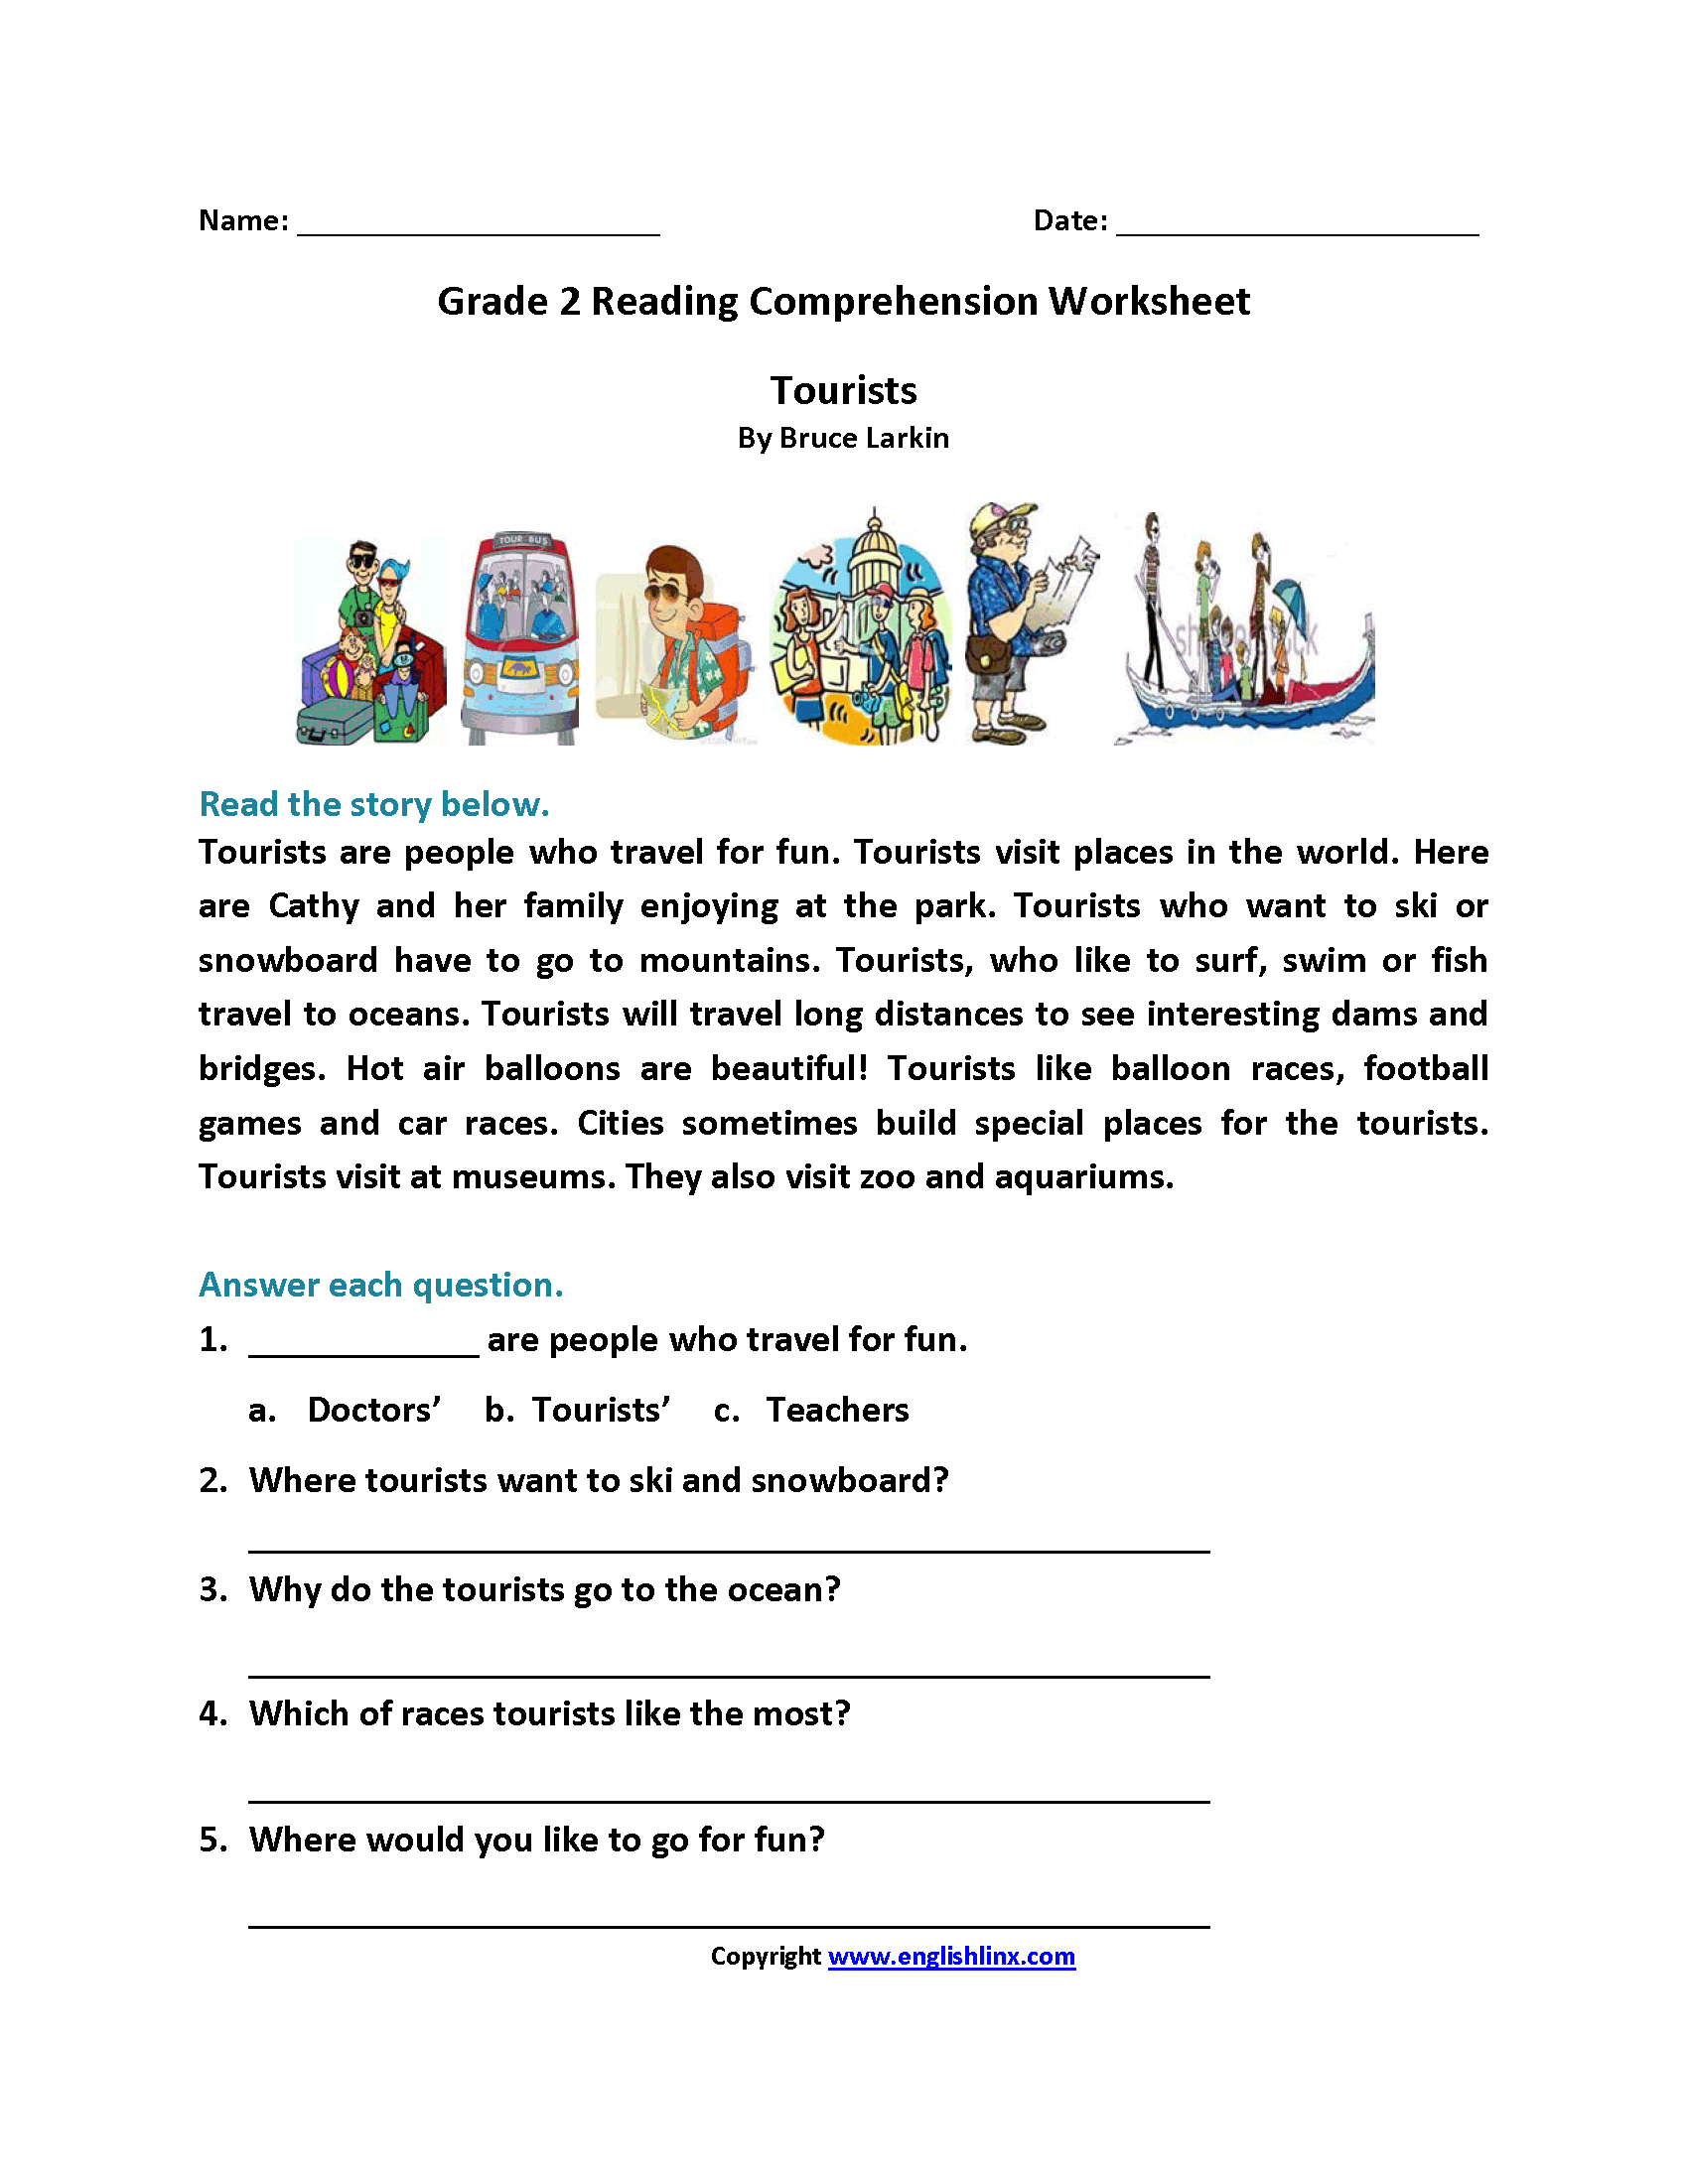 medium resolution of https://cute766.info/english-language-test-for-the-2nd-grade-worksheet-free-esl-printable-worksheets-made-by-teachers/